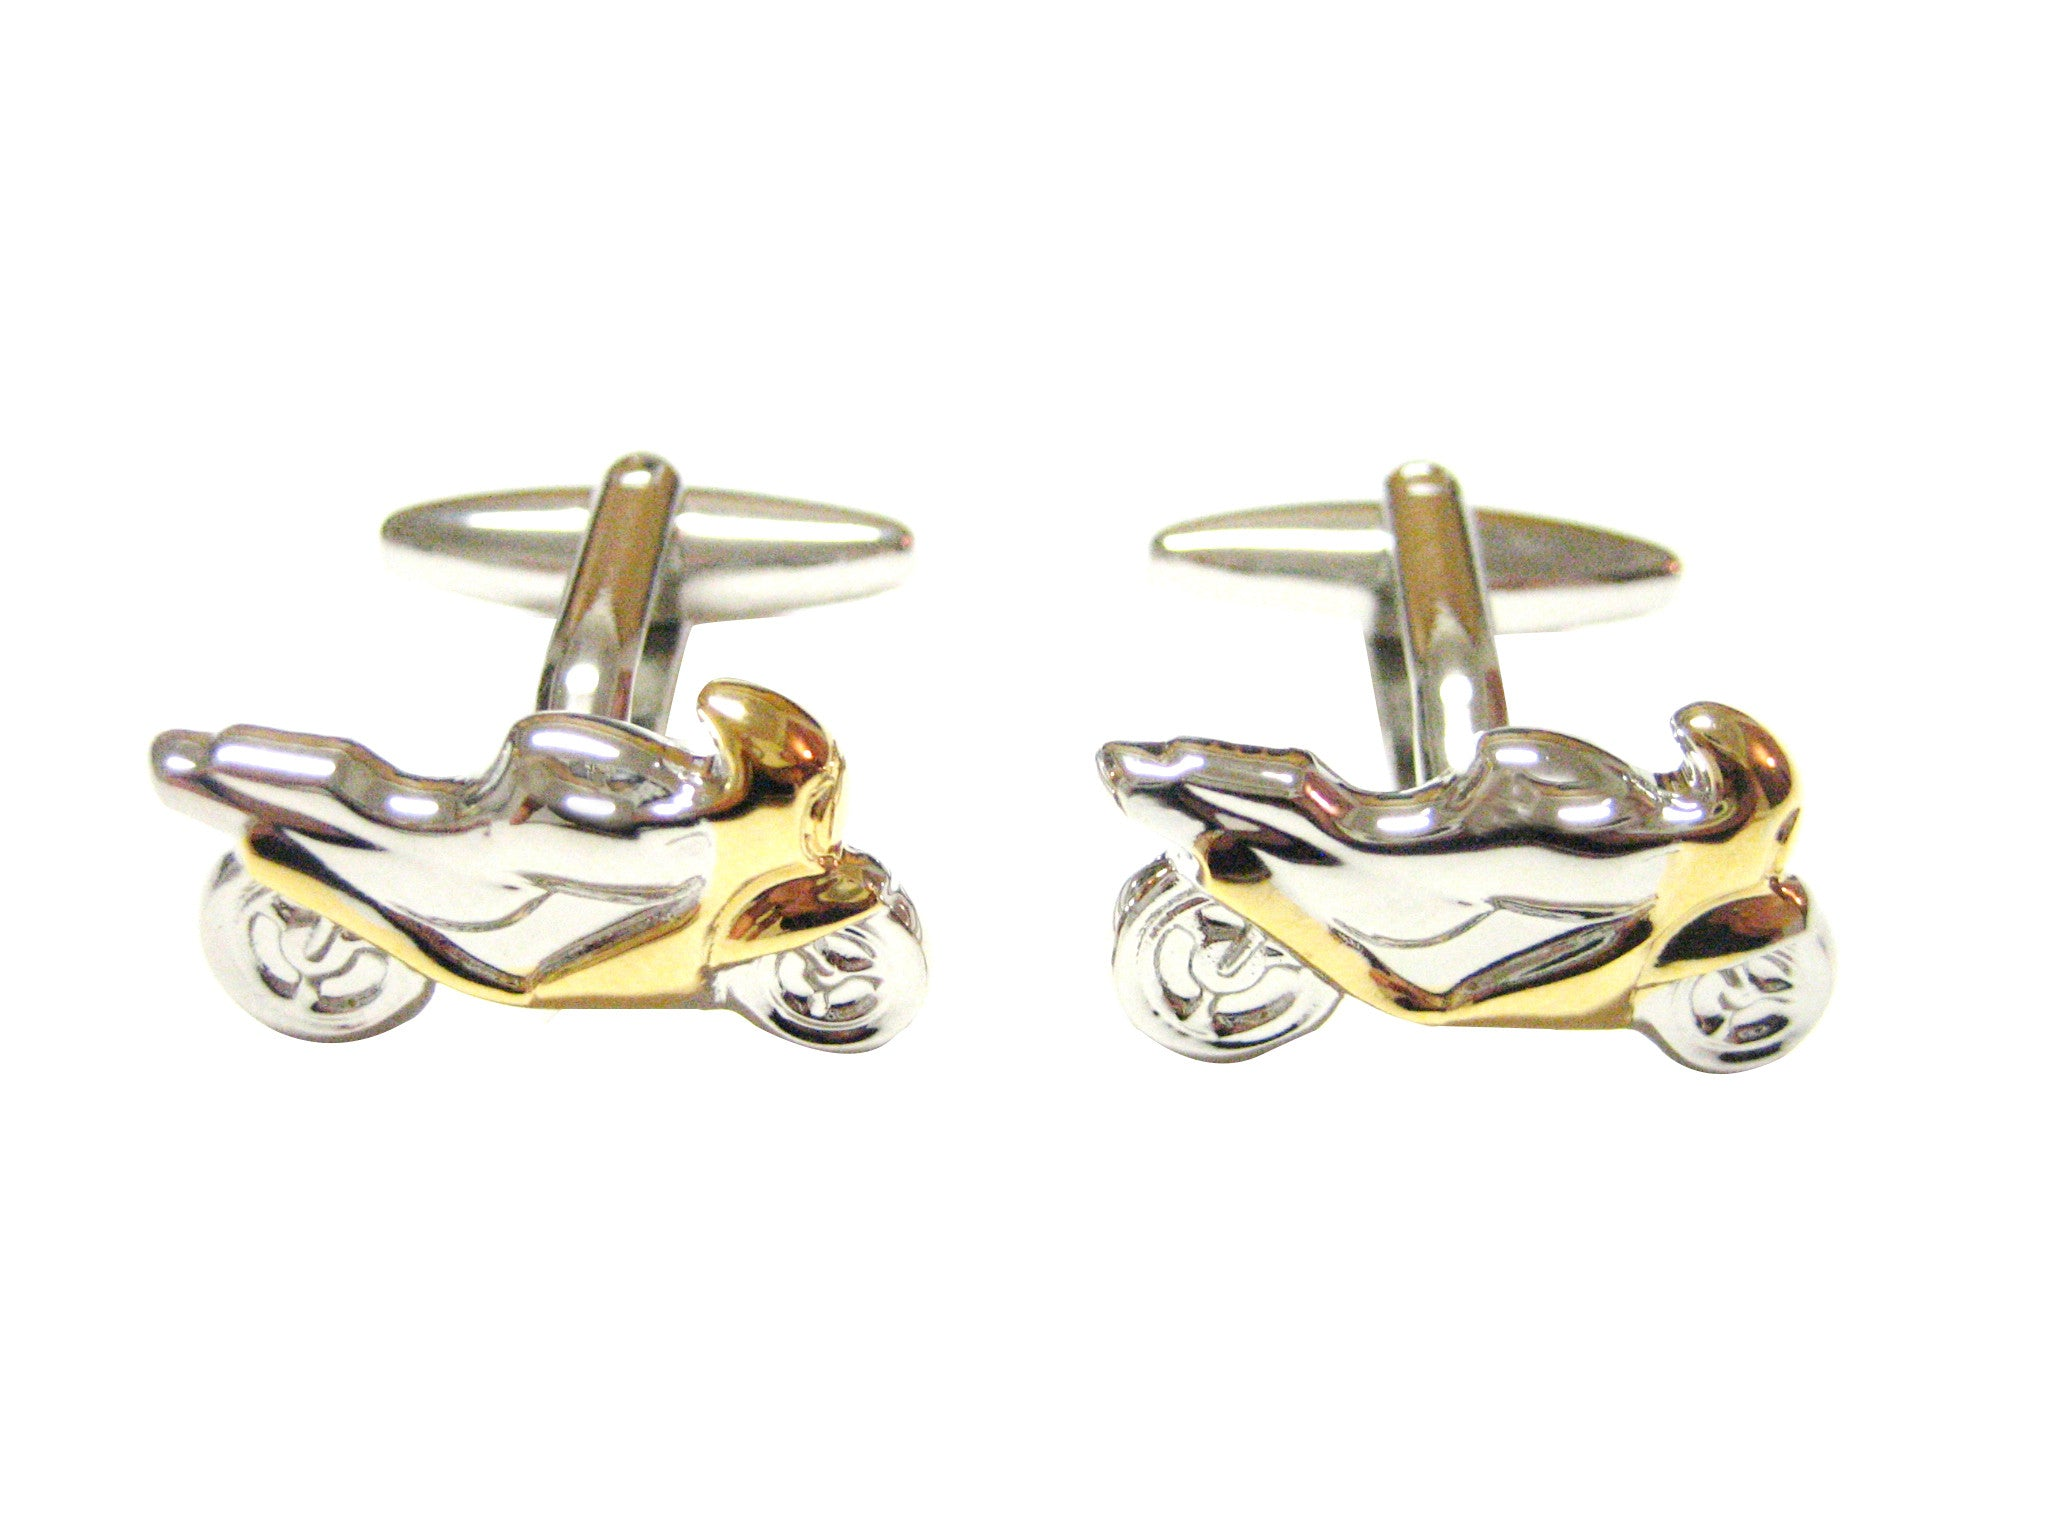 Gold and Silver Toned Motorcycle Cufflinks